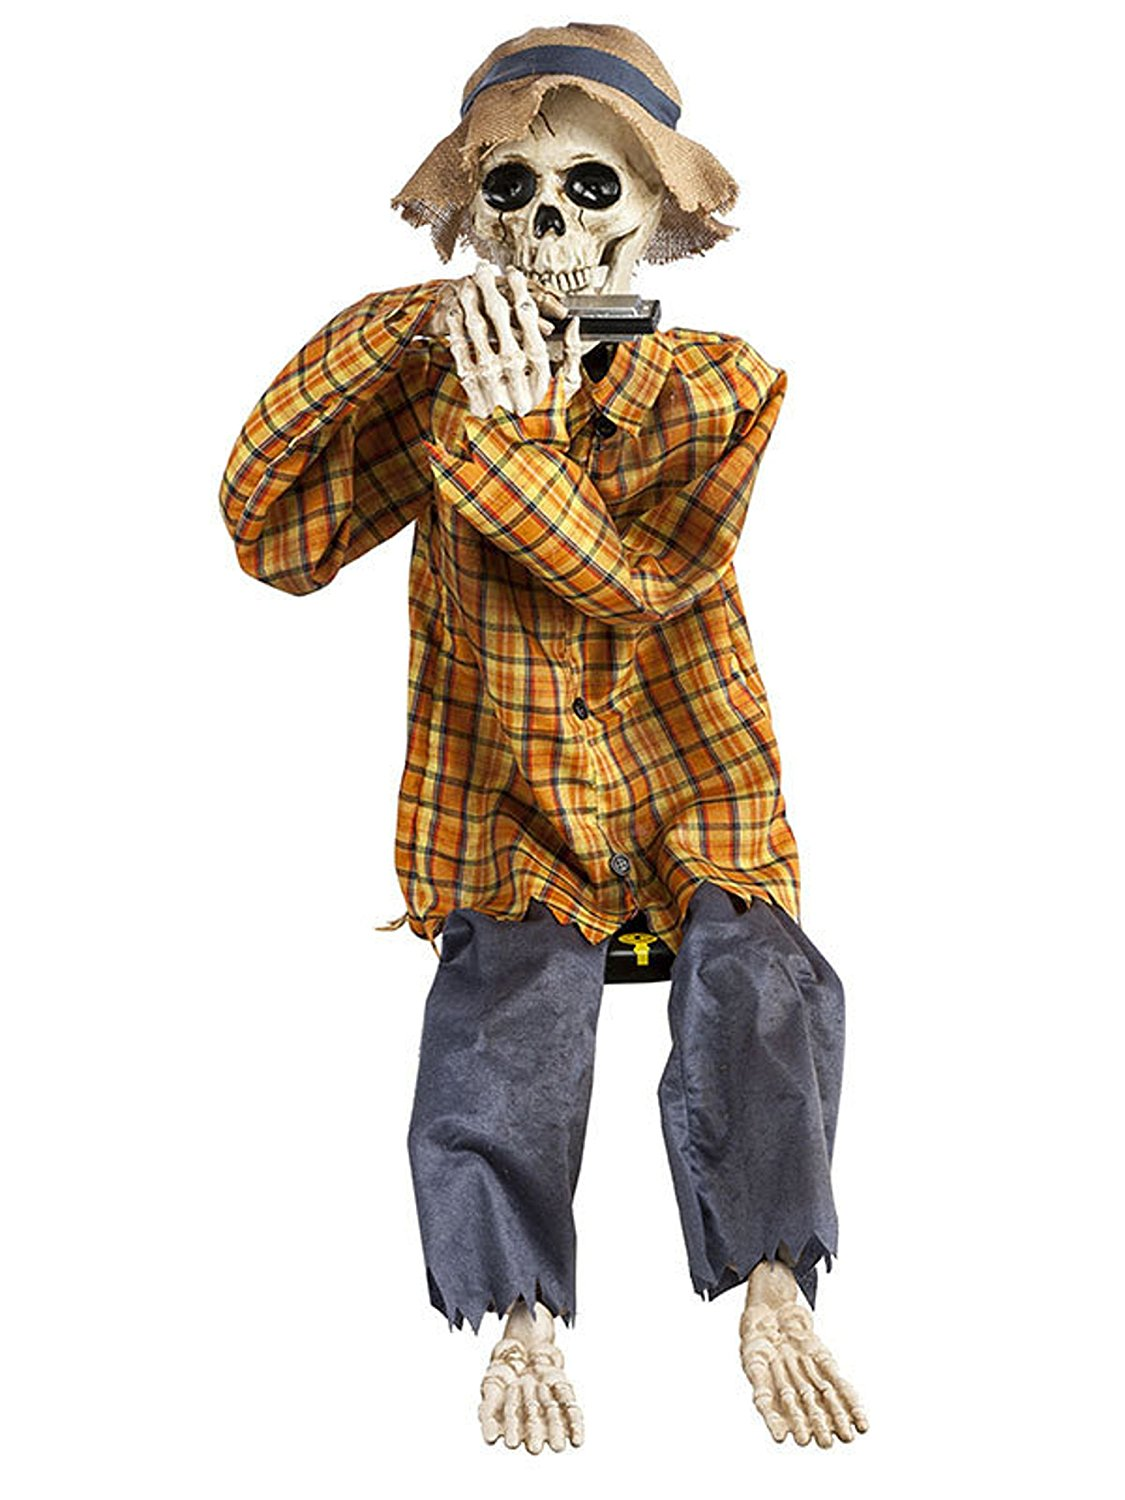 Harmonica Playing Skeleton - Animated Halloween Prop